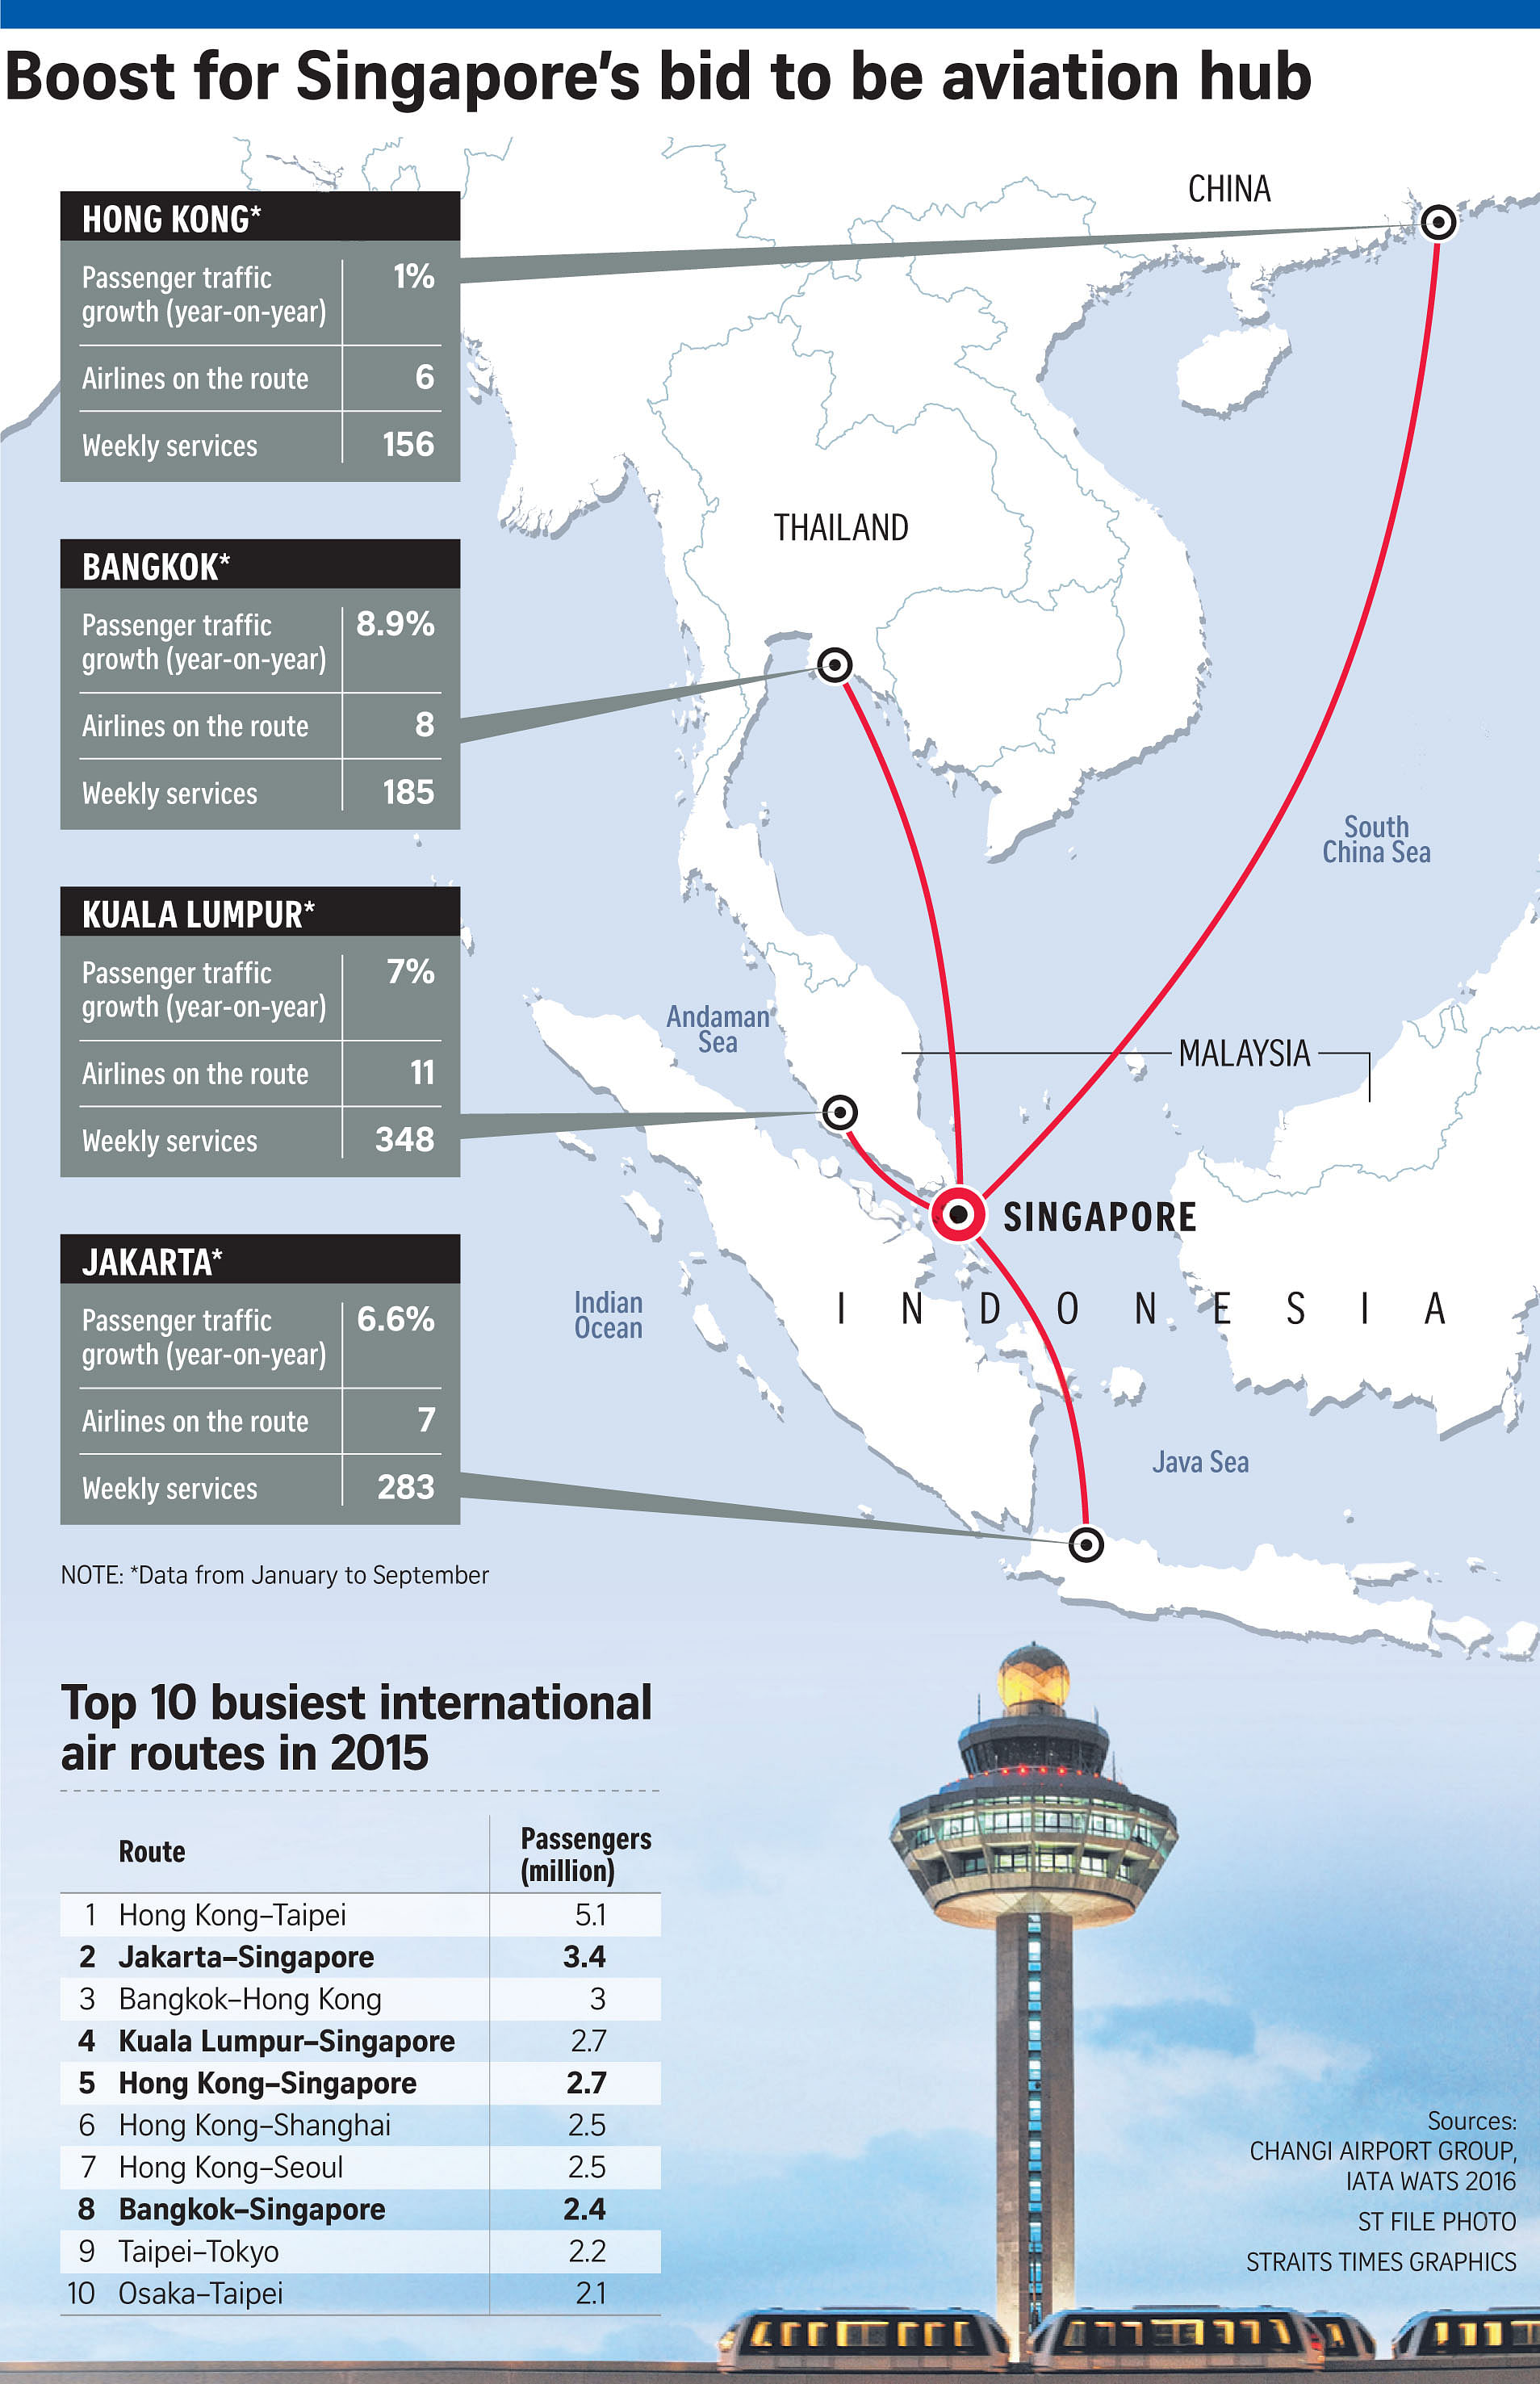 News Clips: Aviation Hub - Singapore on 4 of 10 busiest routes. But...